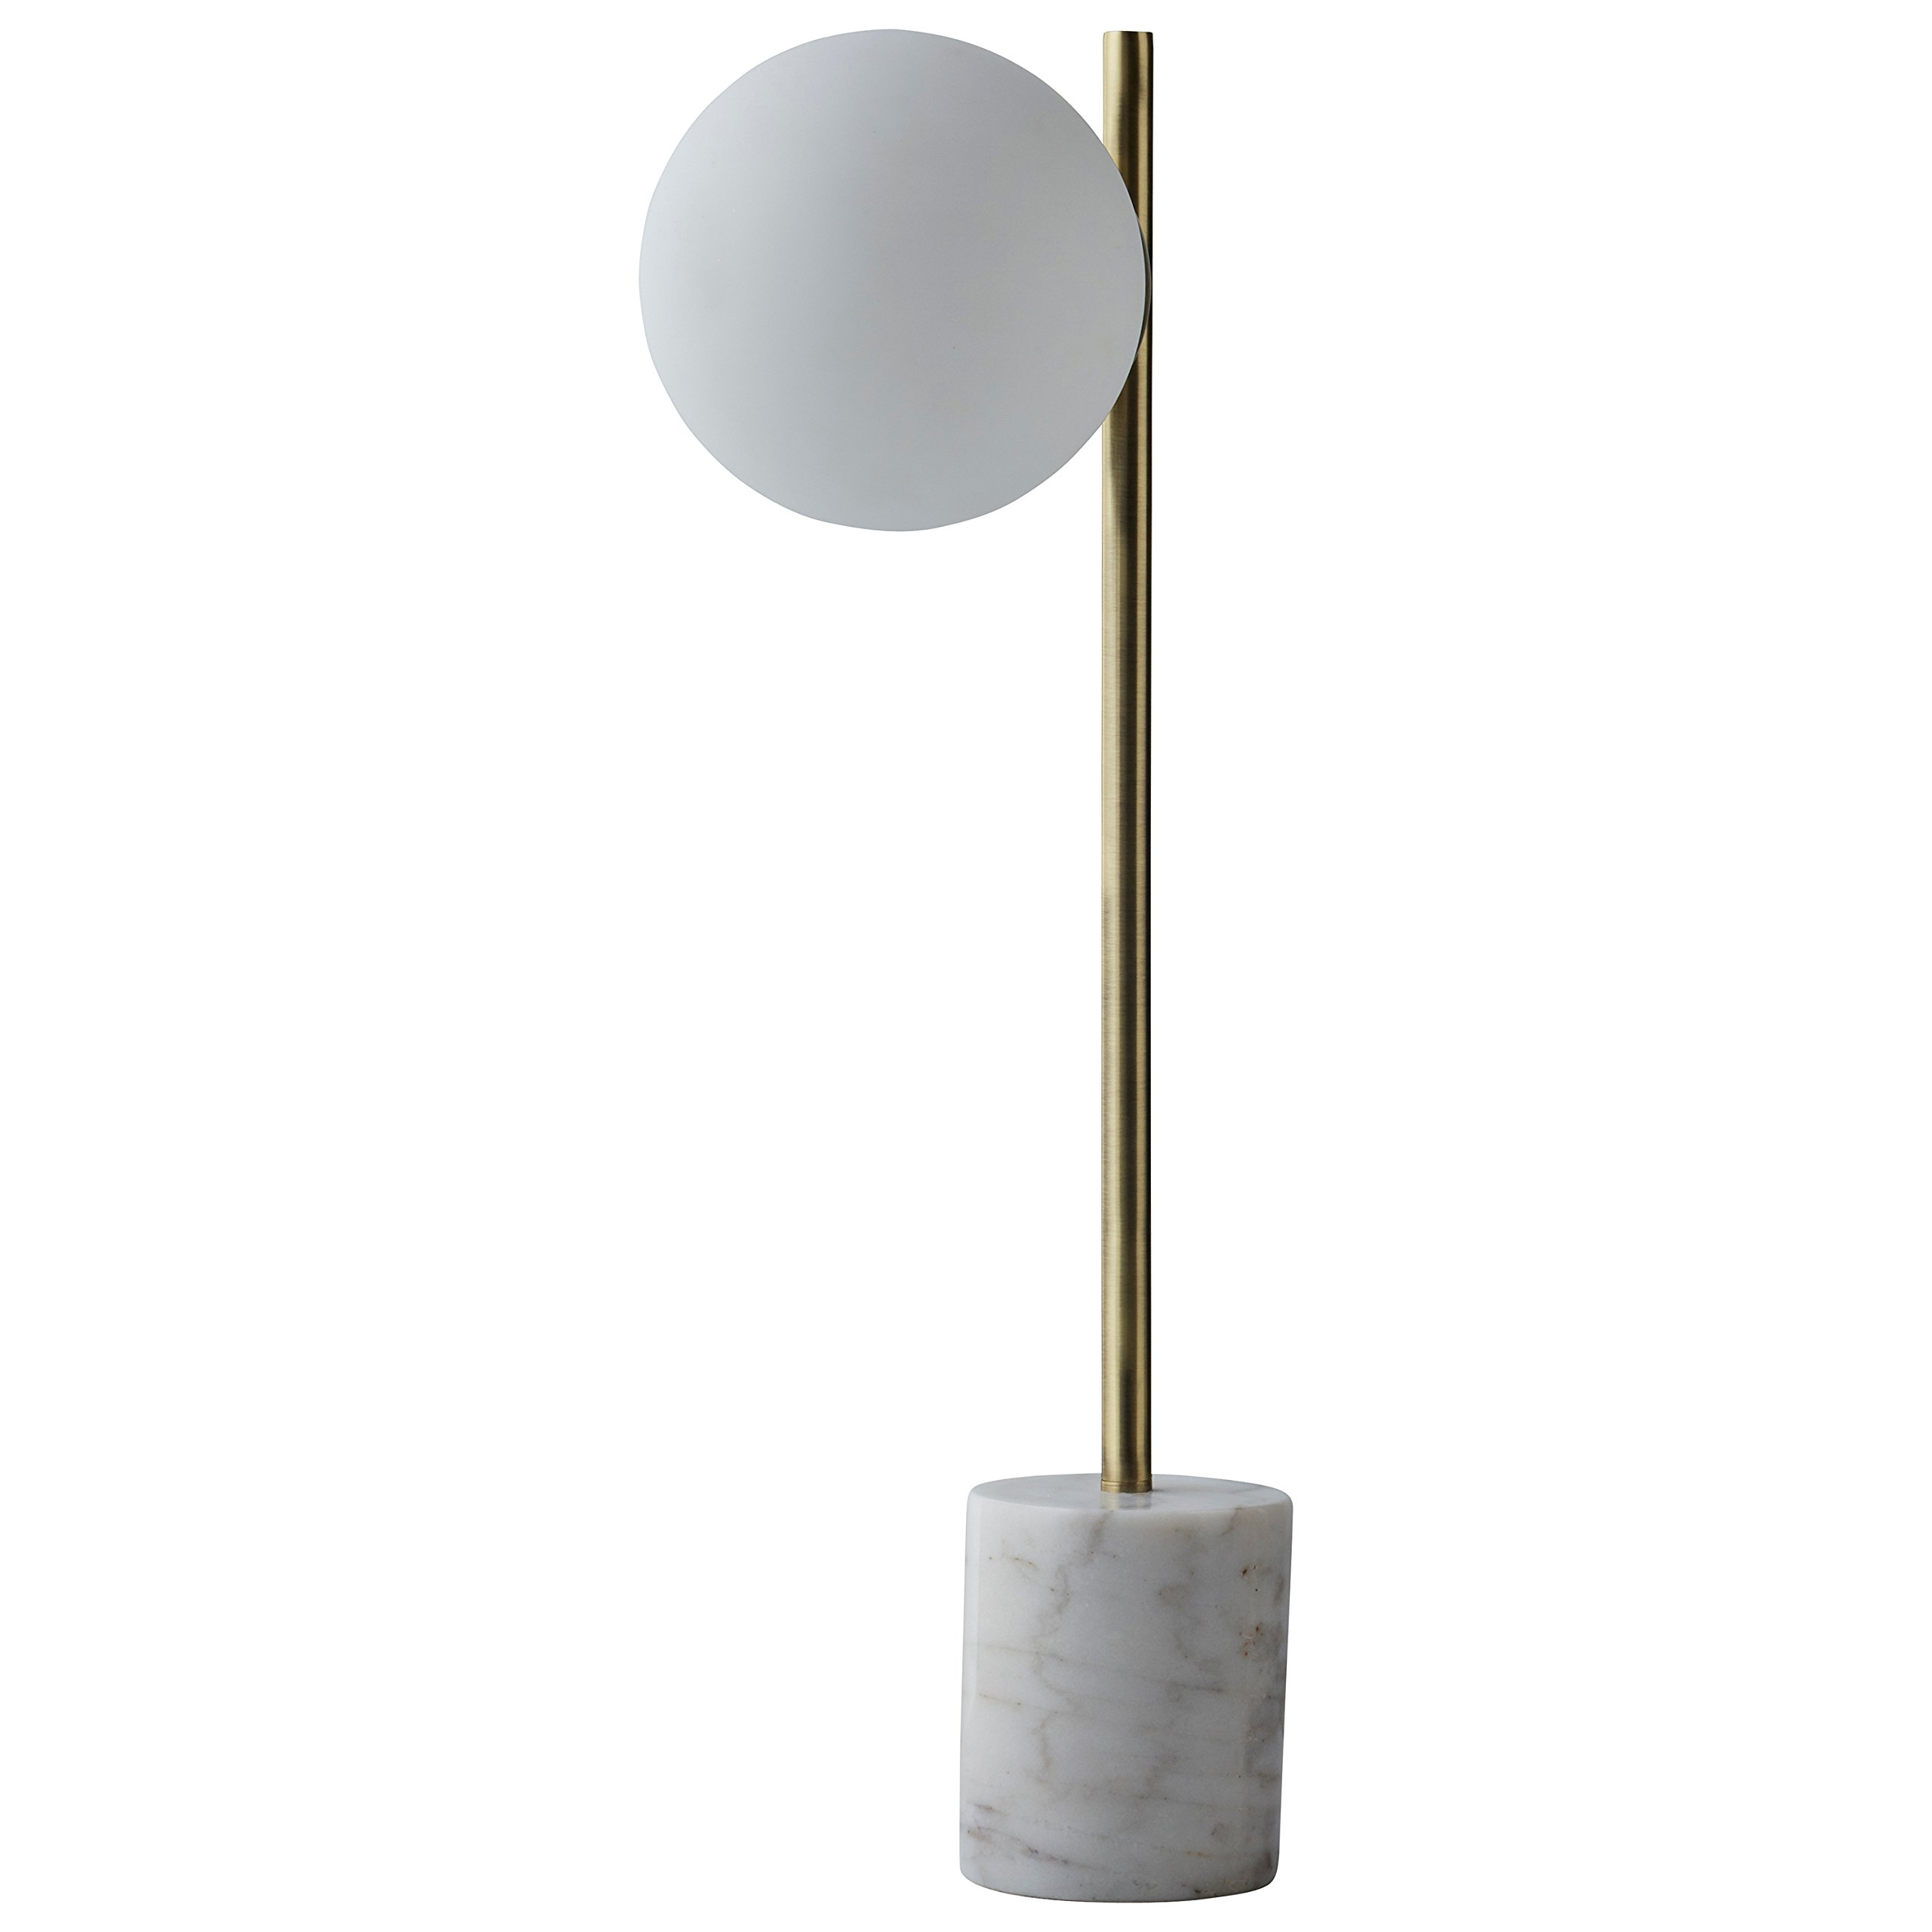 Rivet Modern Glass Globe and Marble Table Lamp with LED Bulb, 23''H, Brass, White by Rivet (Image #7)